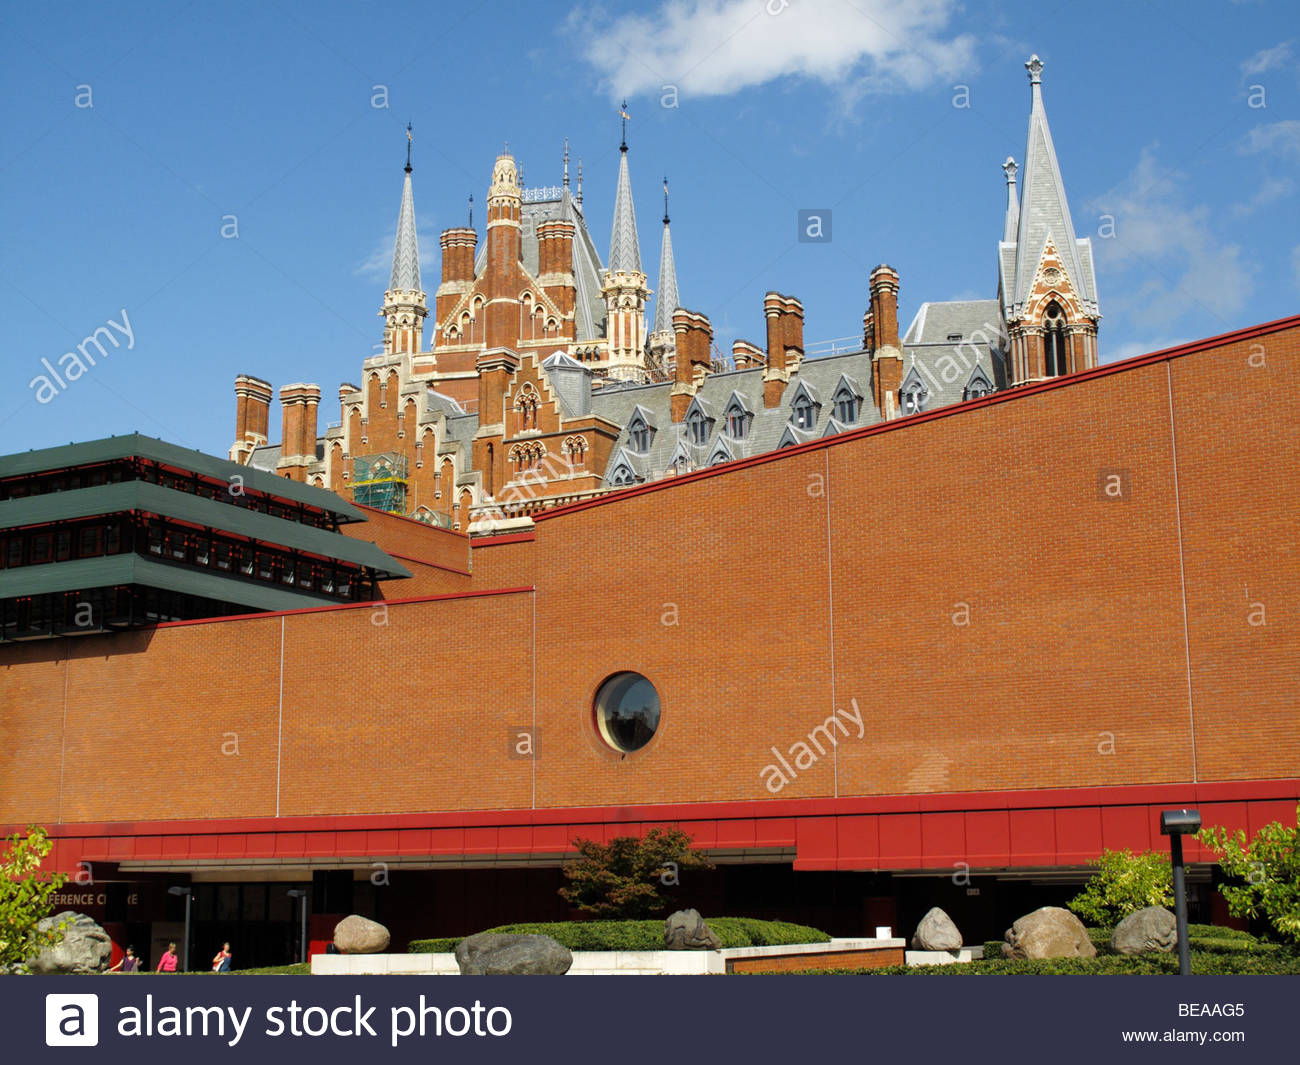 The British Library and St Pancras station, London - Stock Image